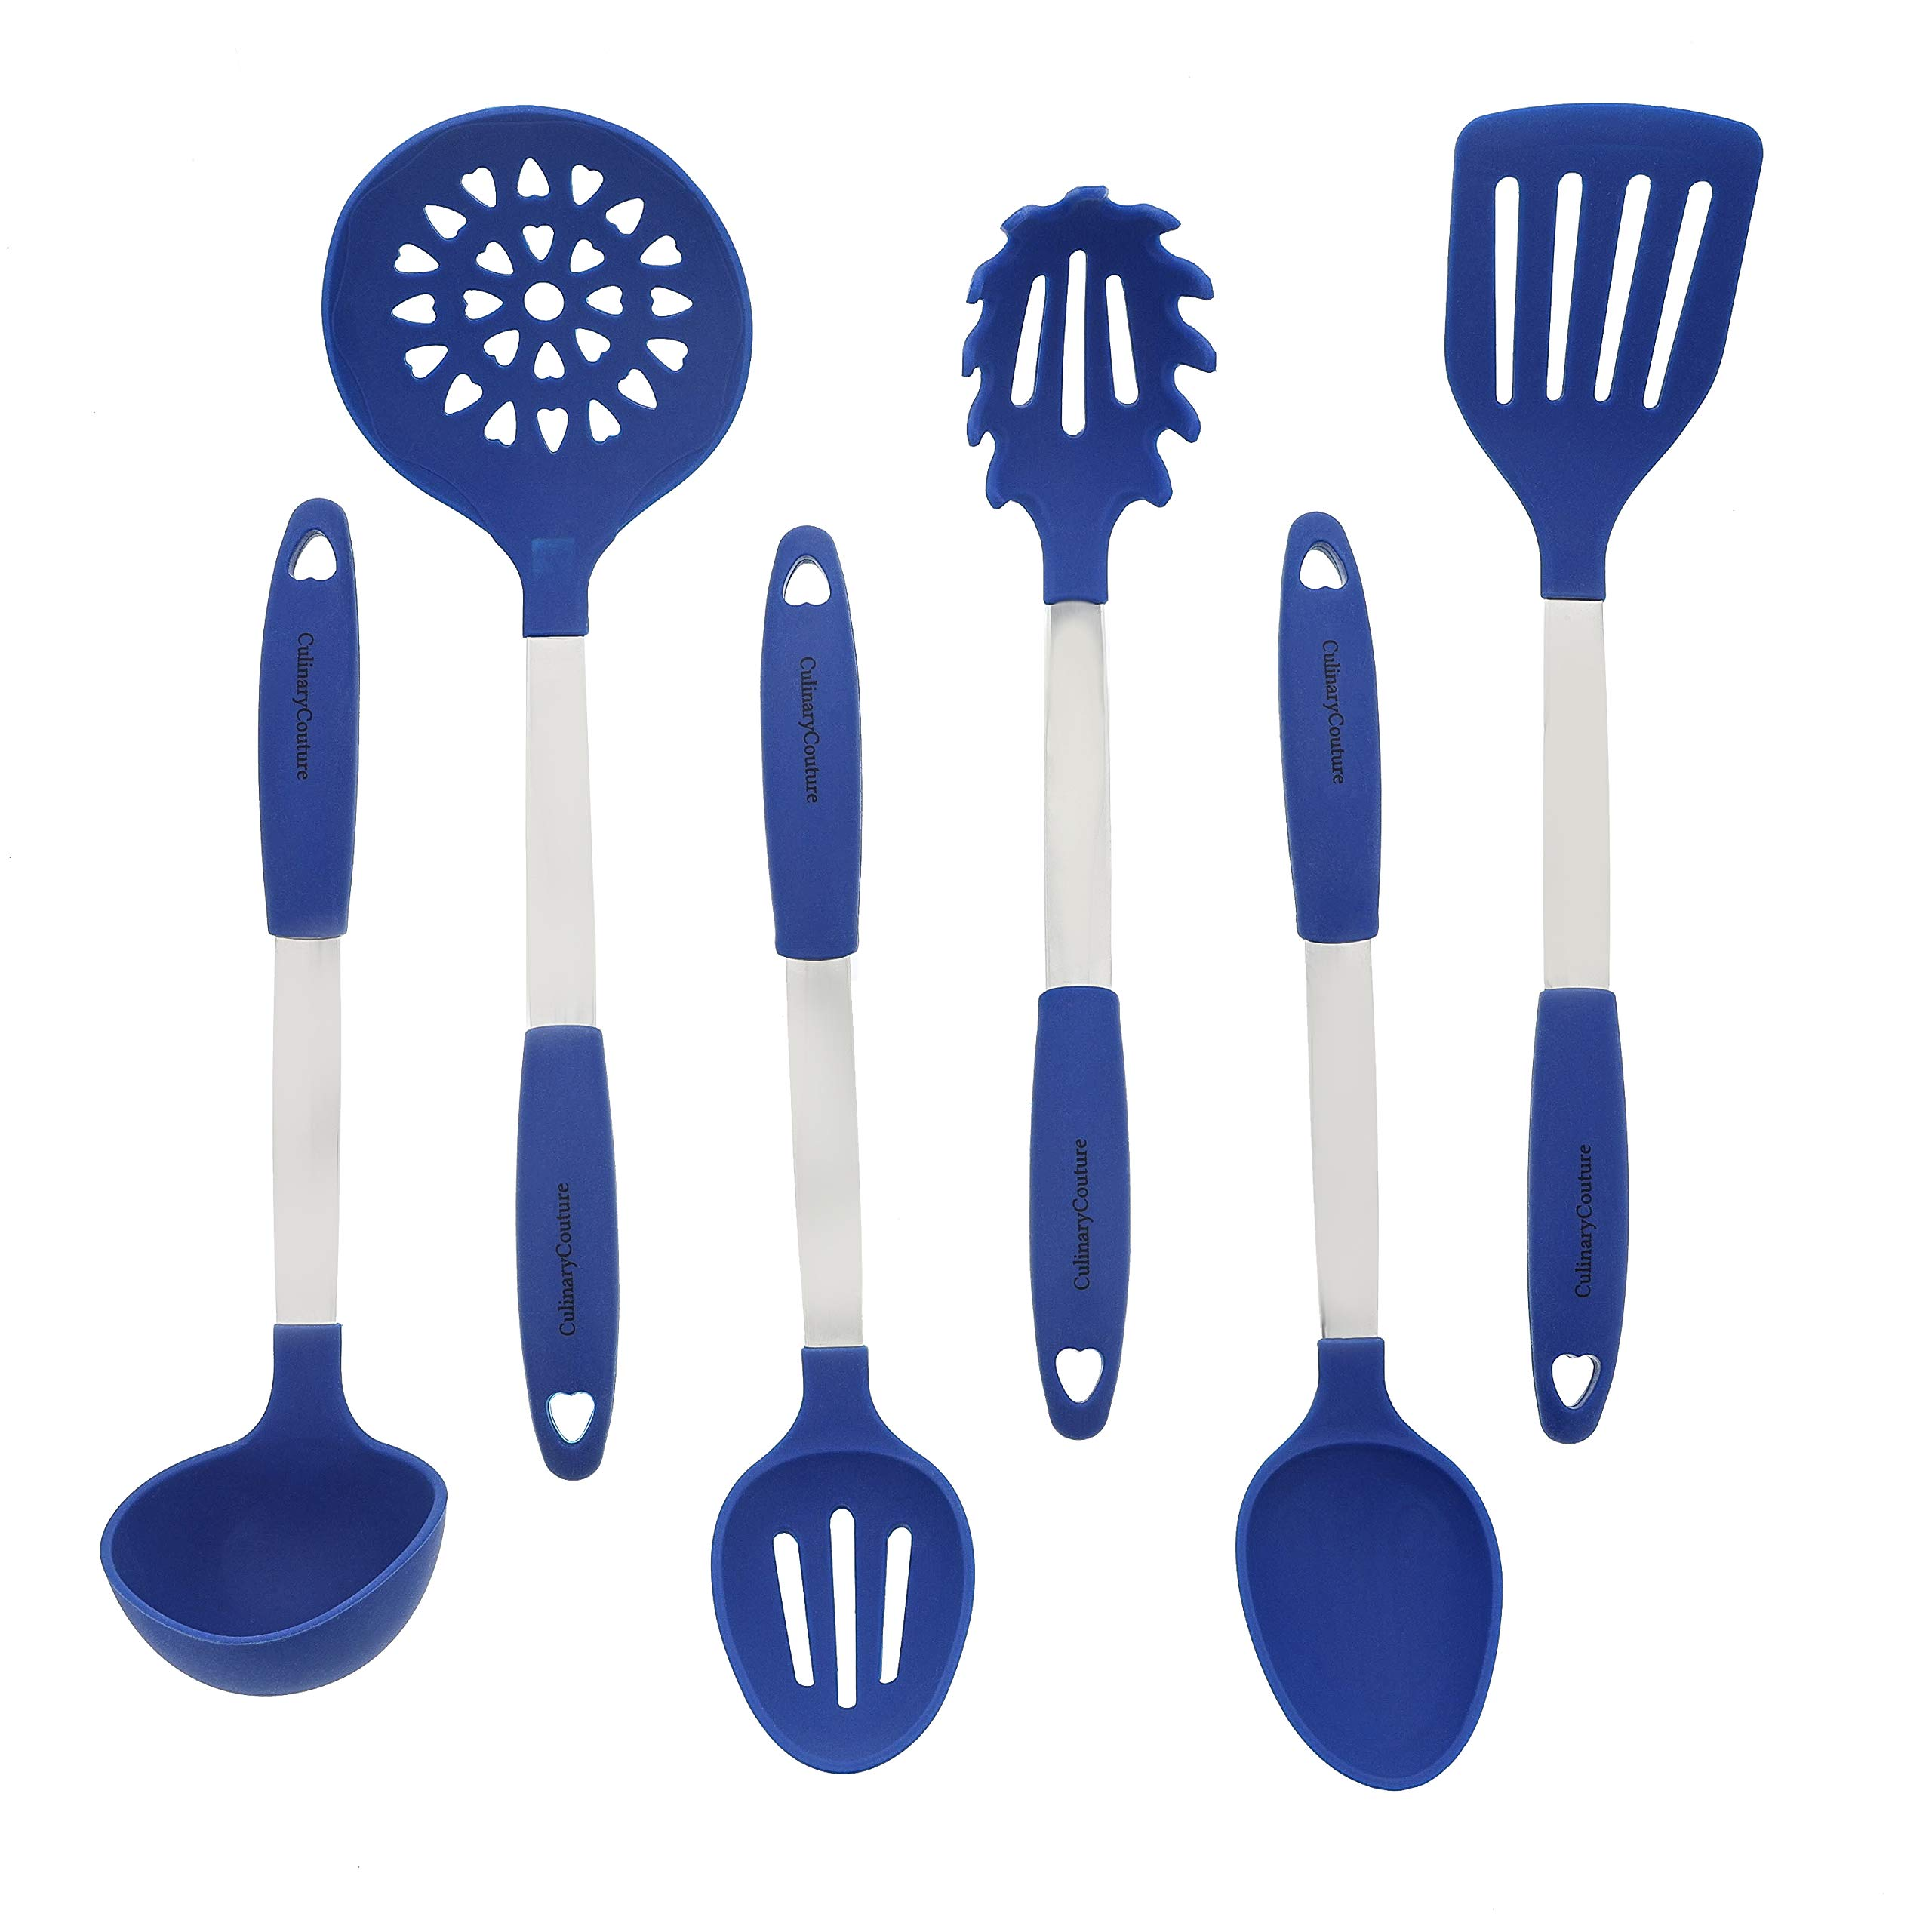 Blue Kitchen Utensil Set - Stainless Steel & Silicone Heat Resistant Professional Cooking Tools - Spatula, Mixing & Slotted Spoon, Ladle, Pasta Fork Server, Drainer - Bonus Ebook! by Culinary Couture (Image #1)